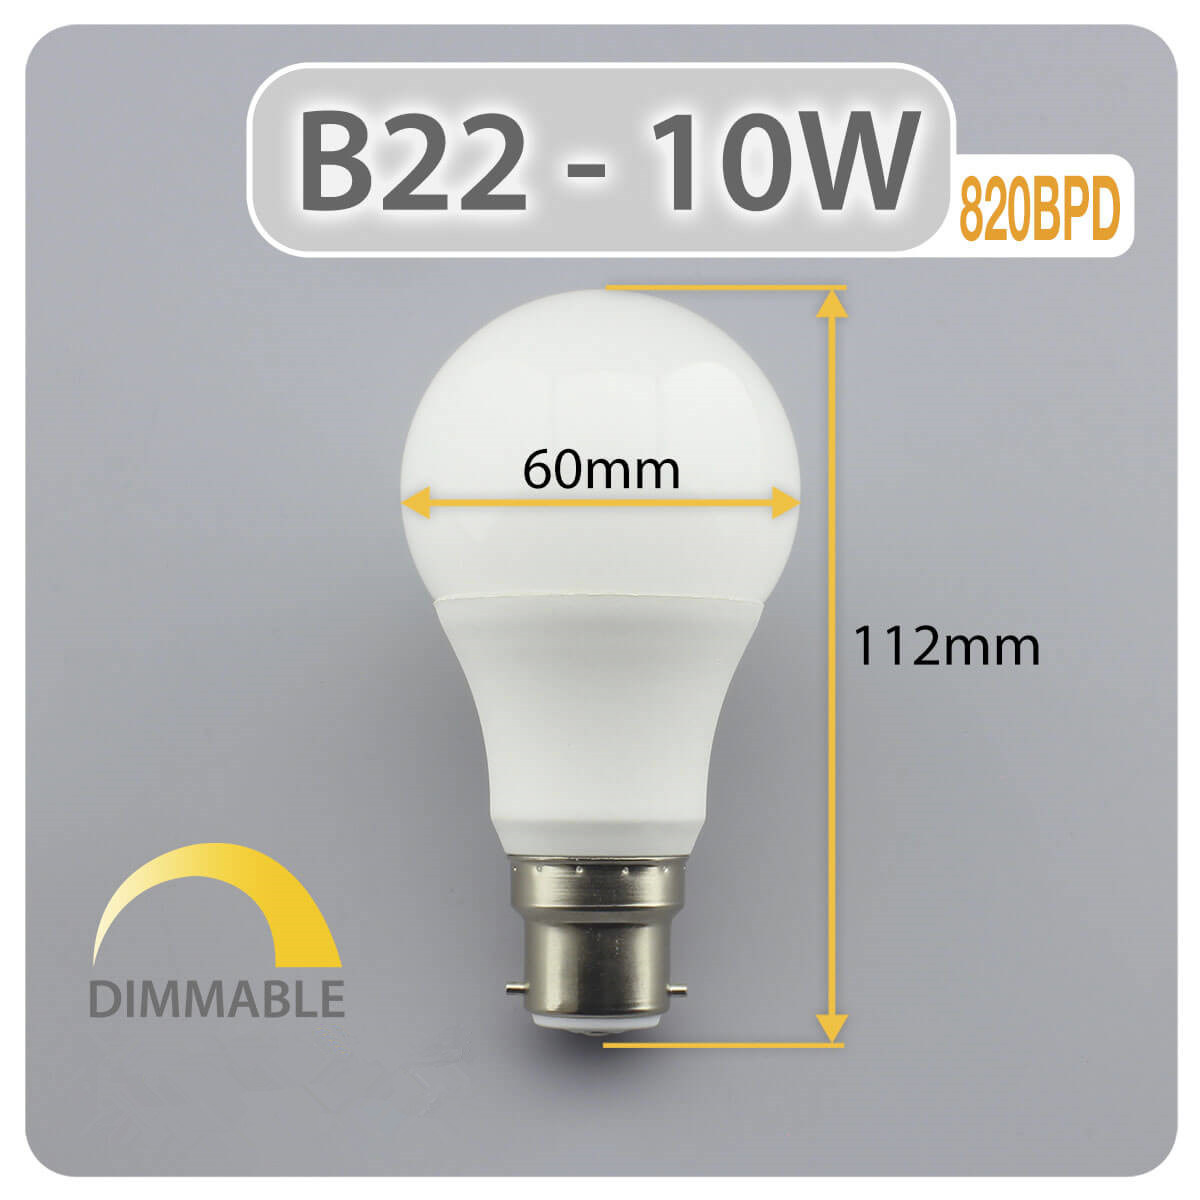 Led Lampen E27 China Energy Saving Lampen E27 5w 7w 9w 12w Light A19 A60 Led